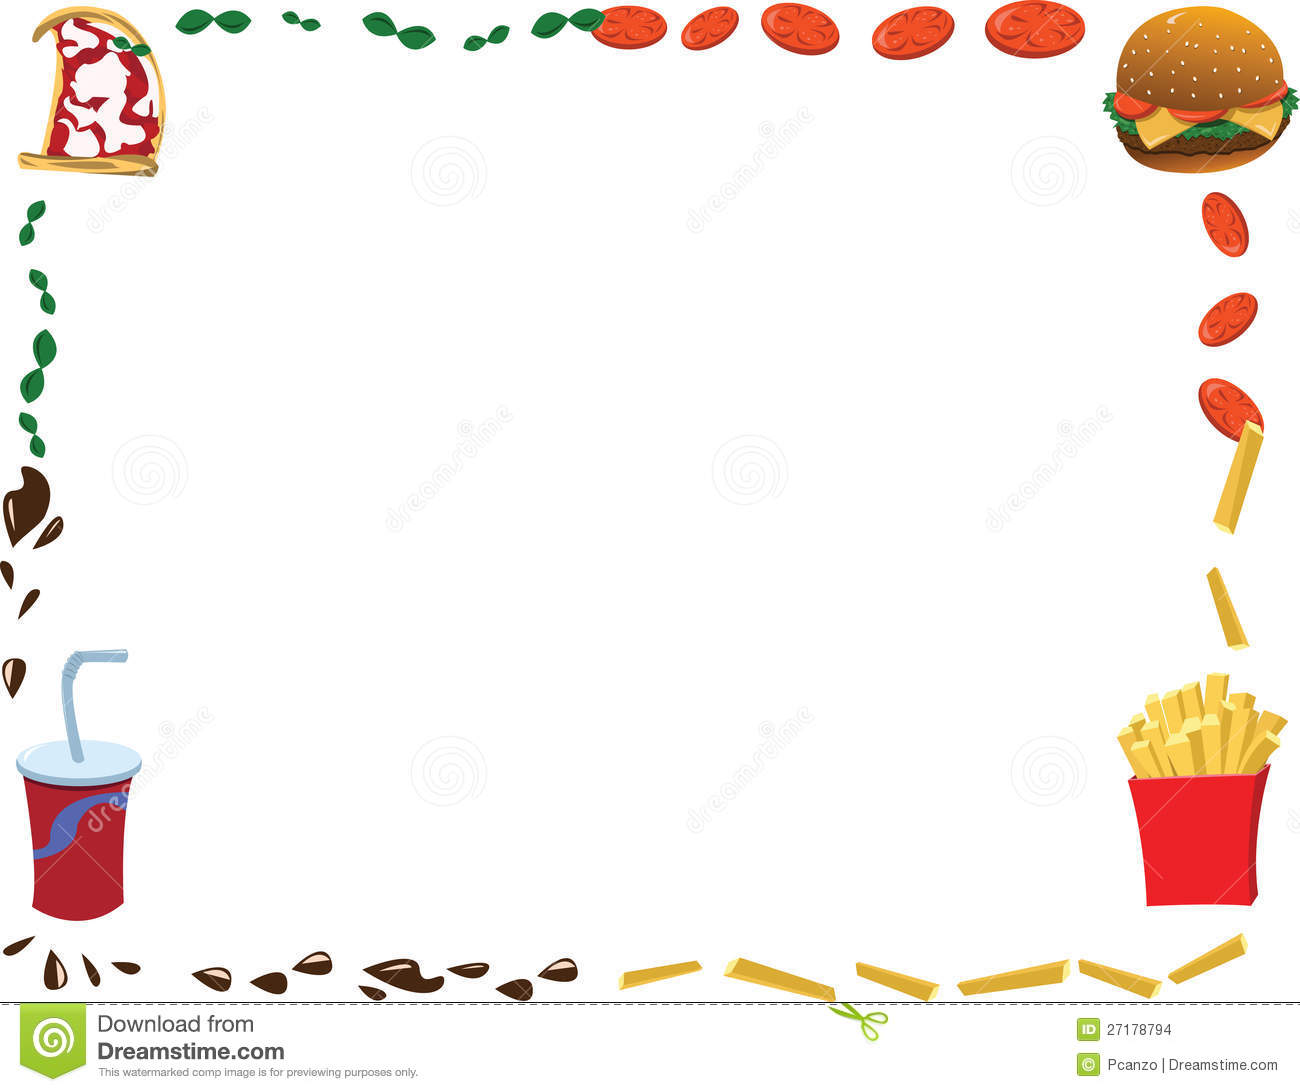 Business plan fast food